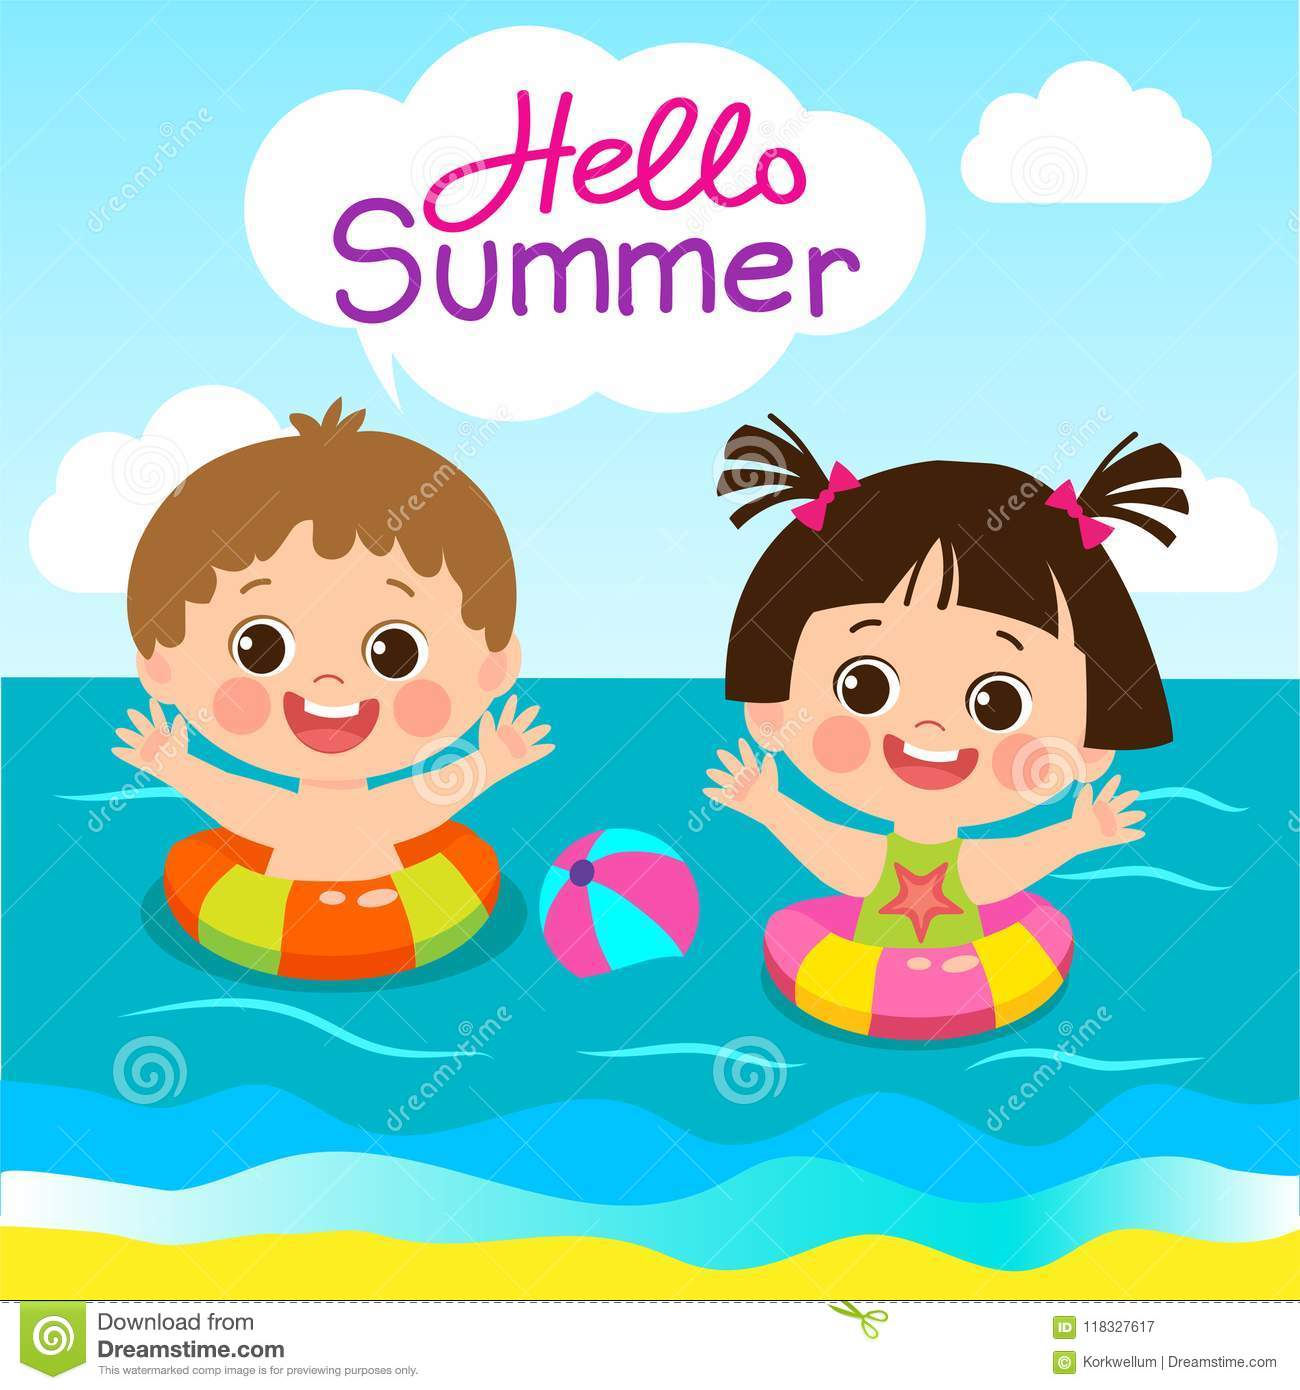 Fun Summer Activities For Kids Summer Kids Vector Cute Boy And Girl With Swim Ring Stock Vector Illustration Of Cute Caucasian 118327617